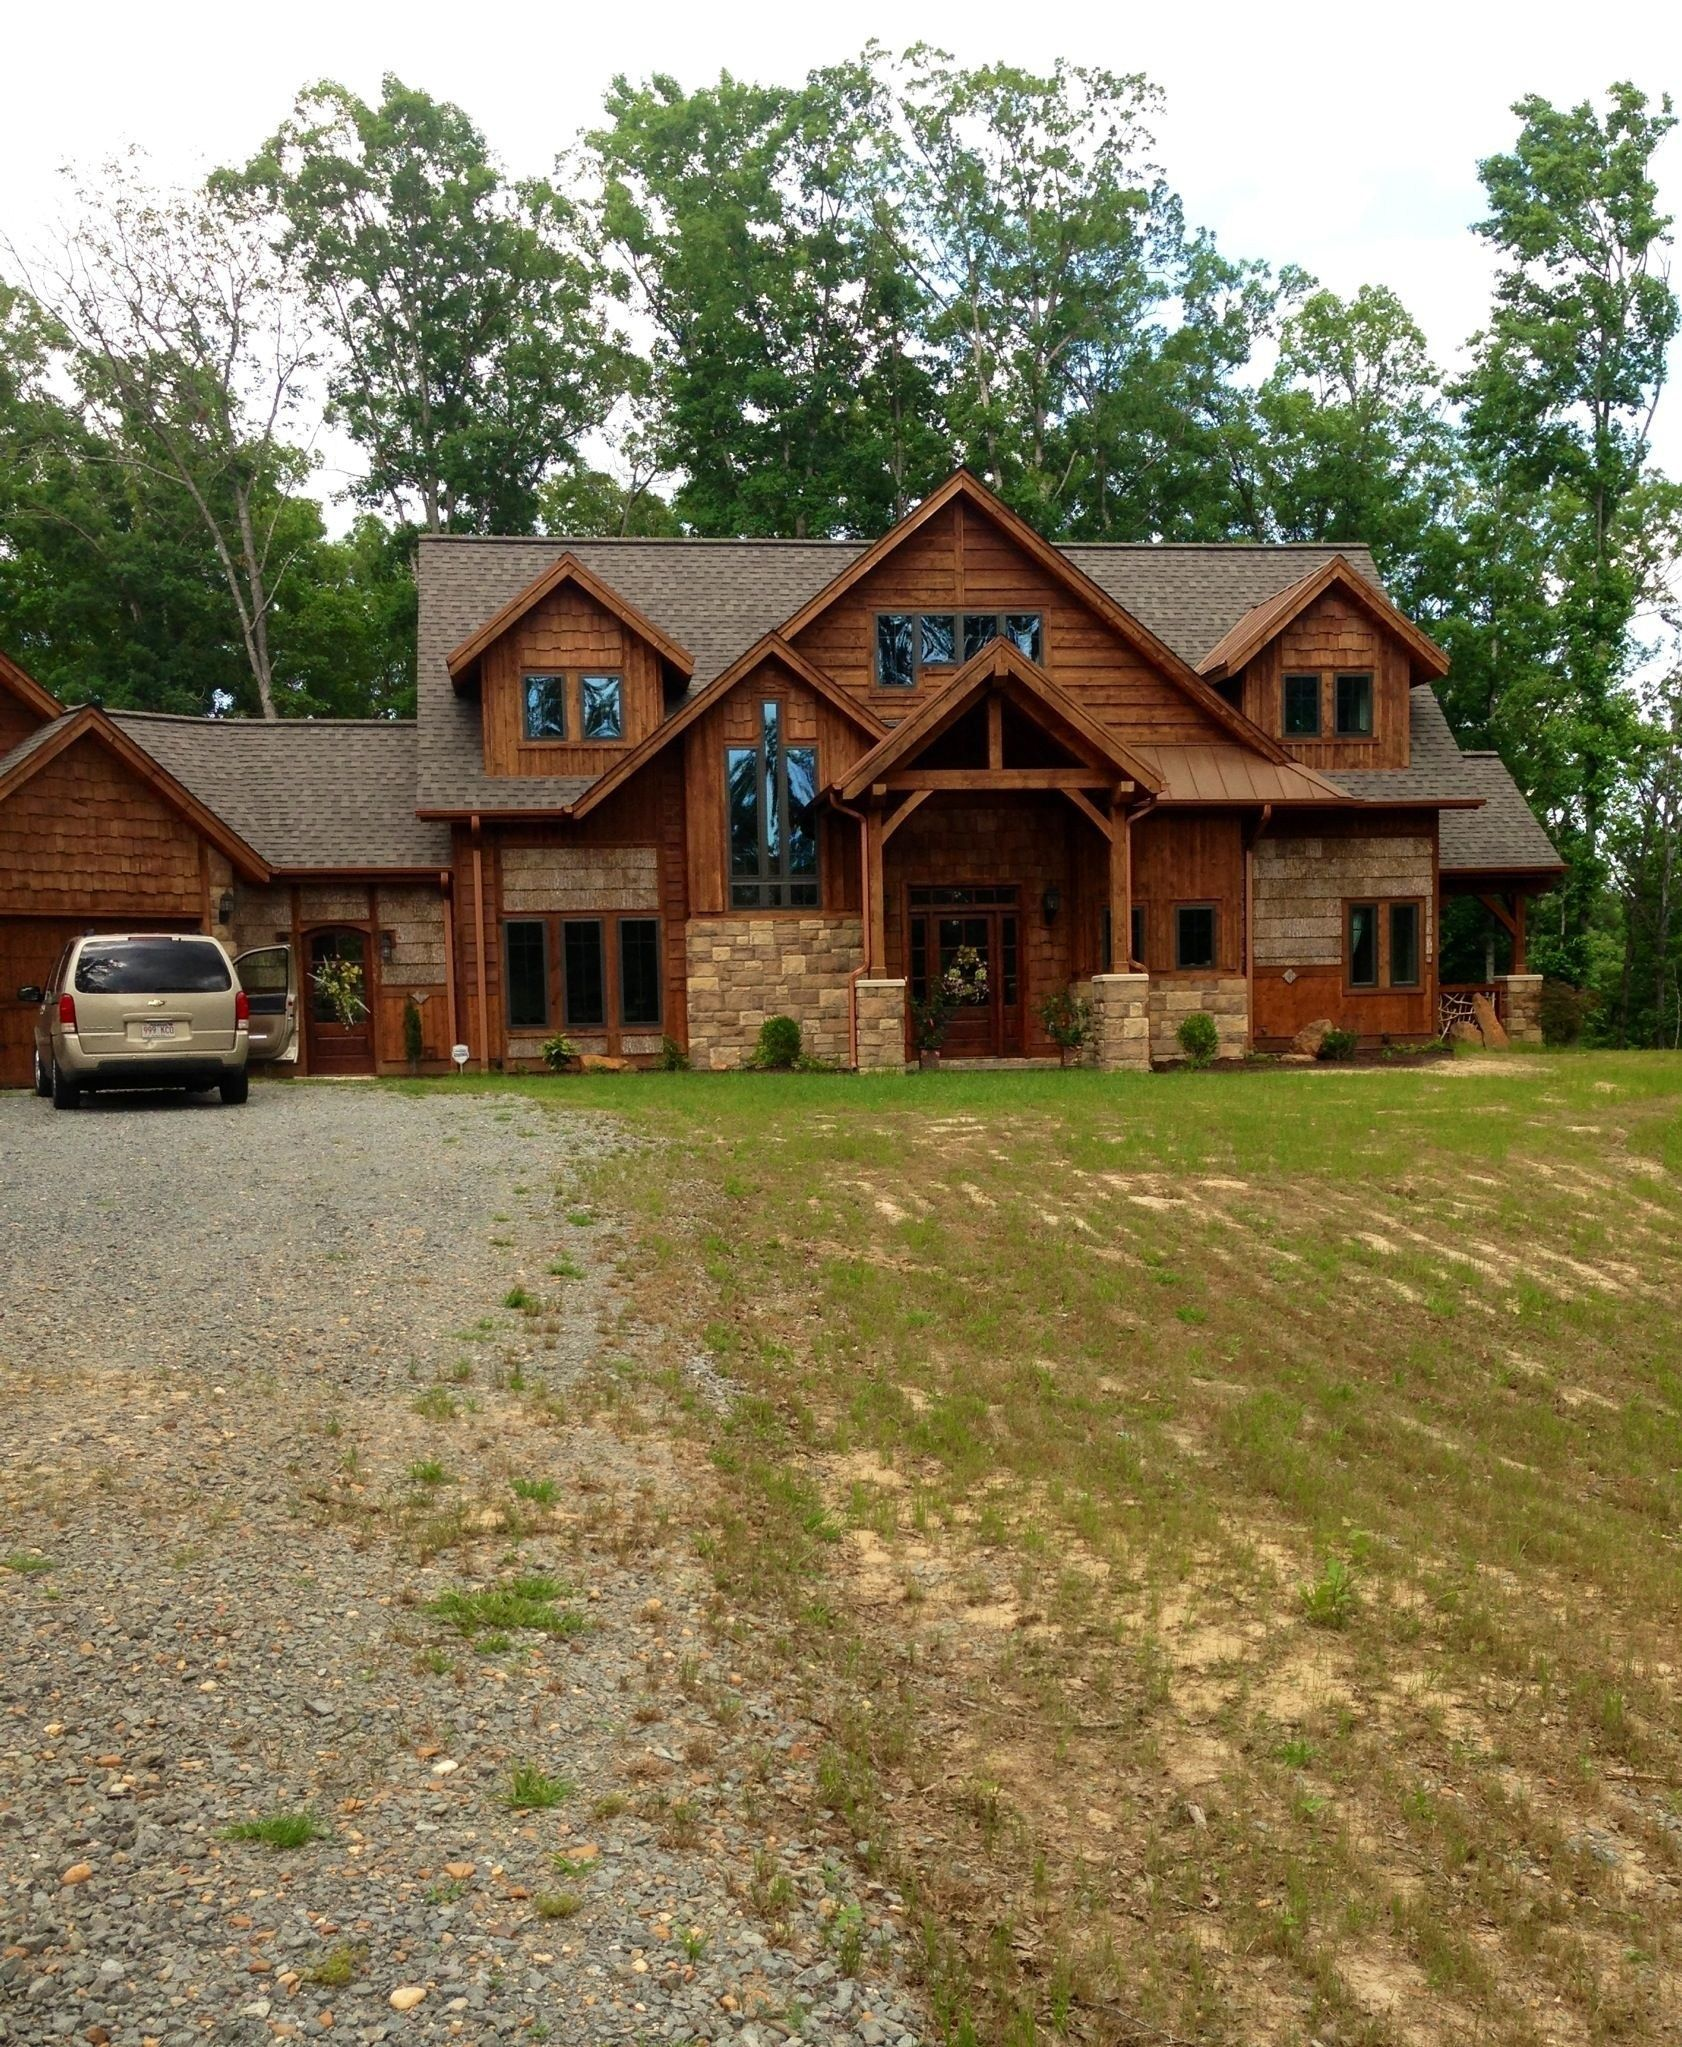 Rustic Mountain House Plans With Walkout Basement Lovely Patch Work Log House Log Cabin Homes Mountain House Plans Log Cabin Homes Log Homes